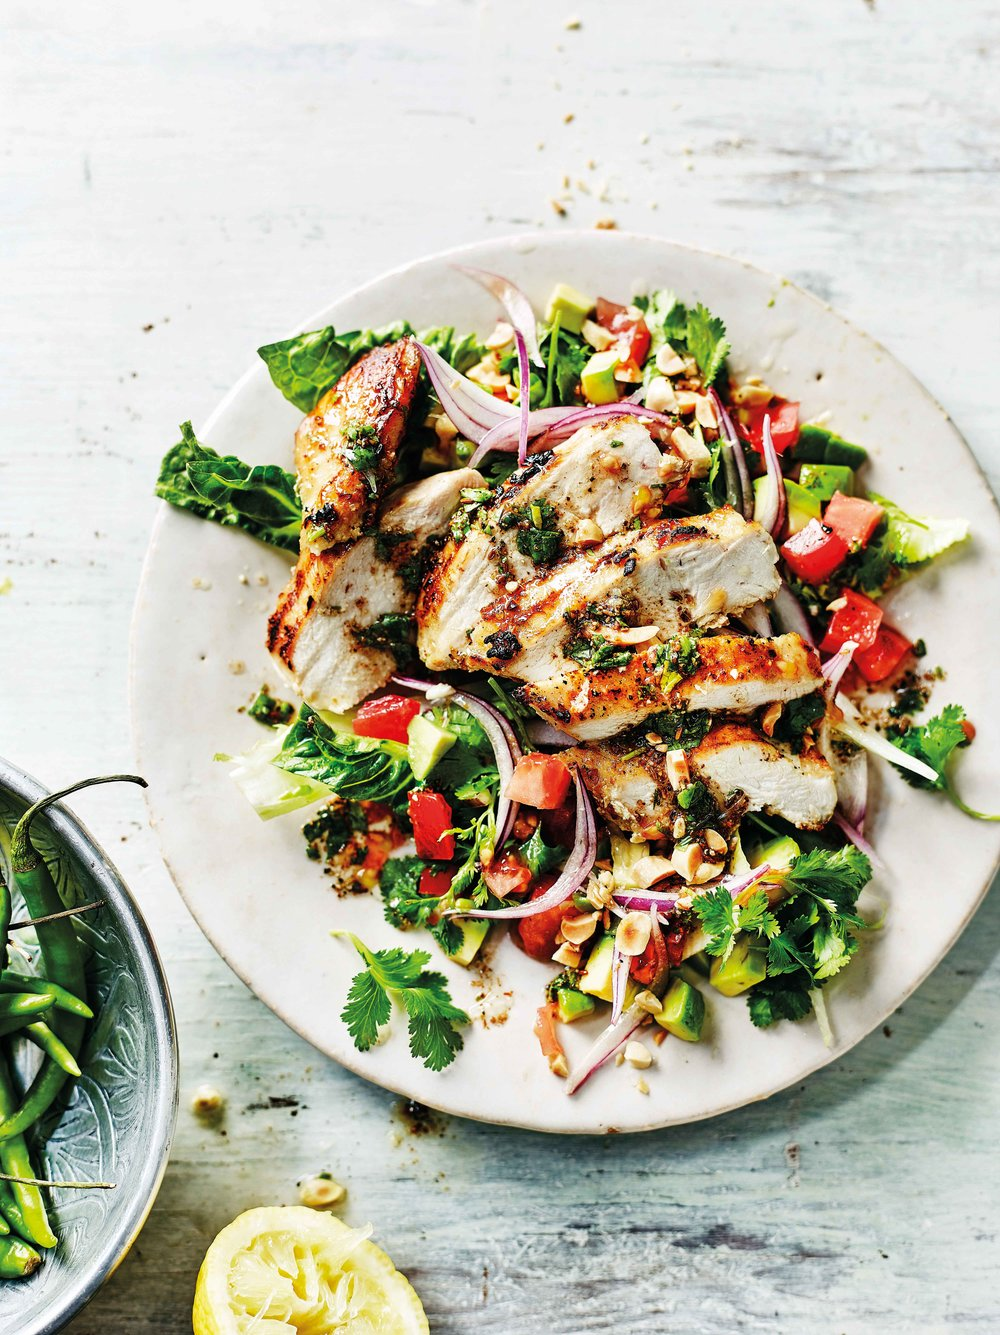 Griddled-chicken-salad